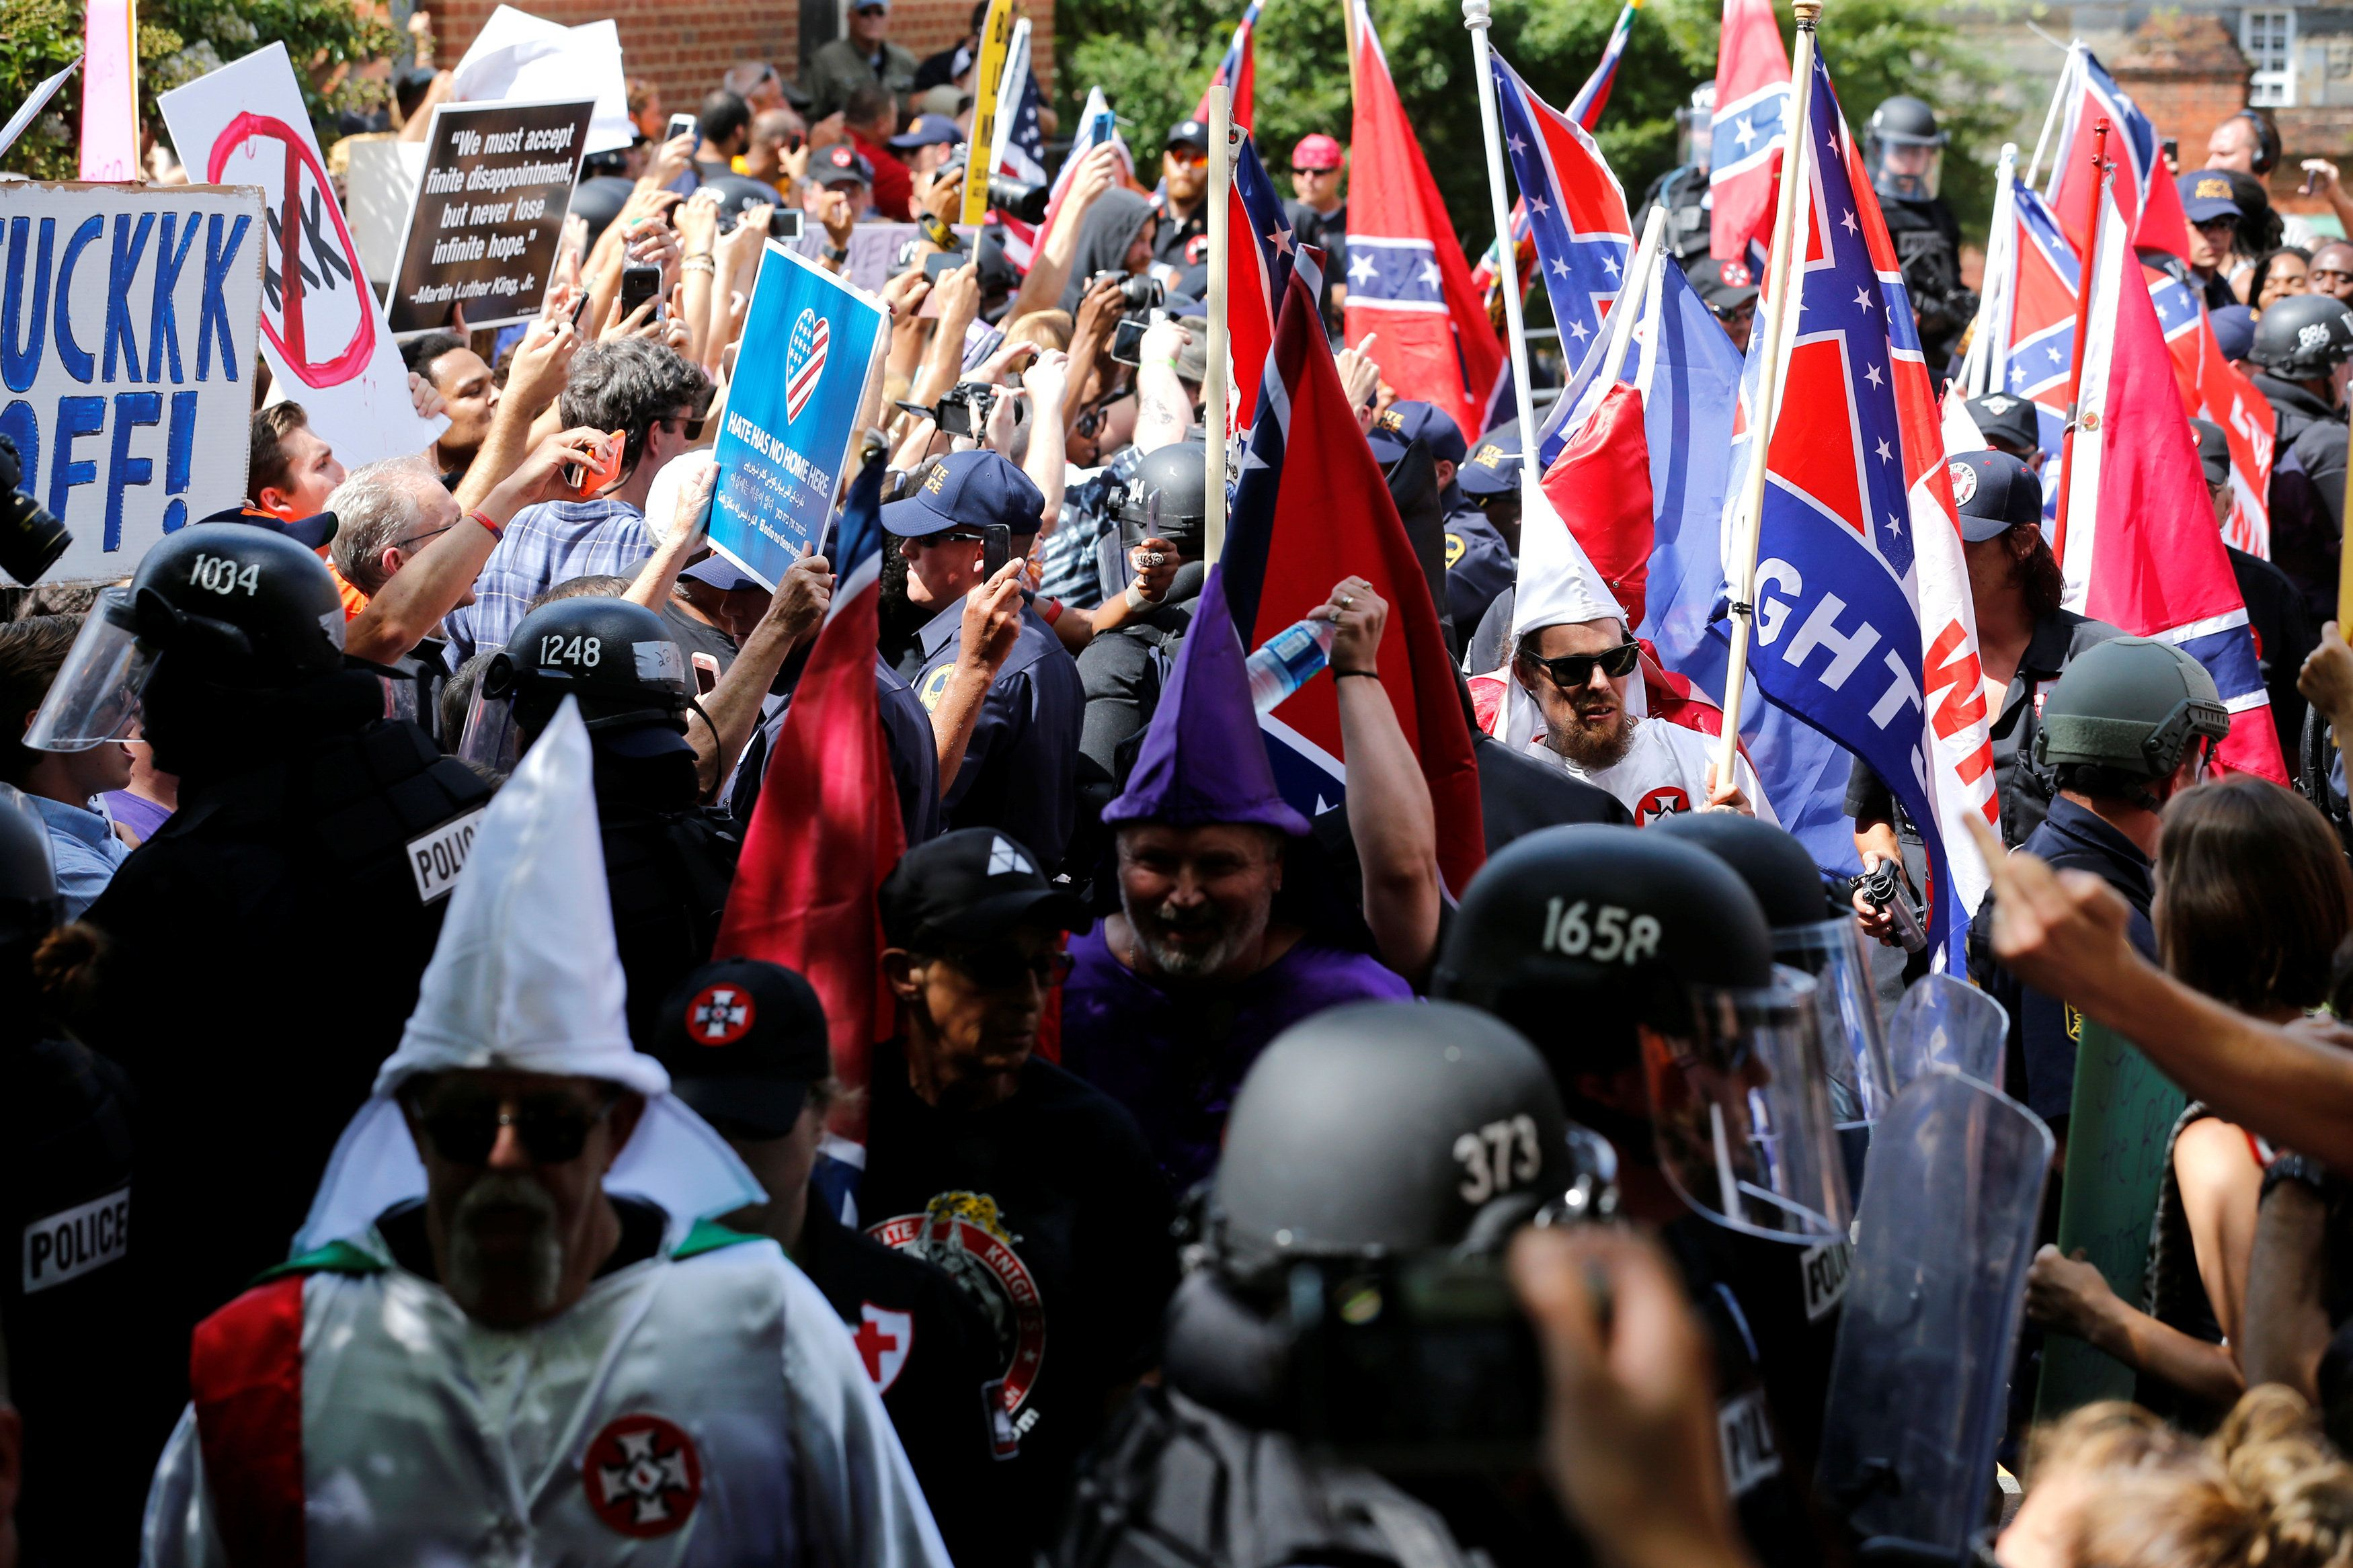 huffingtonpost.com - Trump Aide Katharine Gorka Helped End Funding For Group That Fights White Supremacy